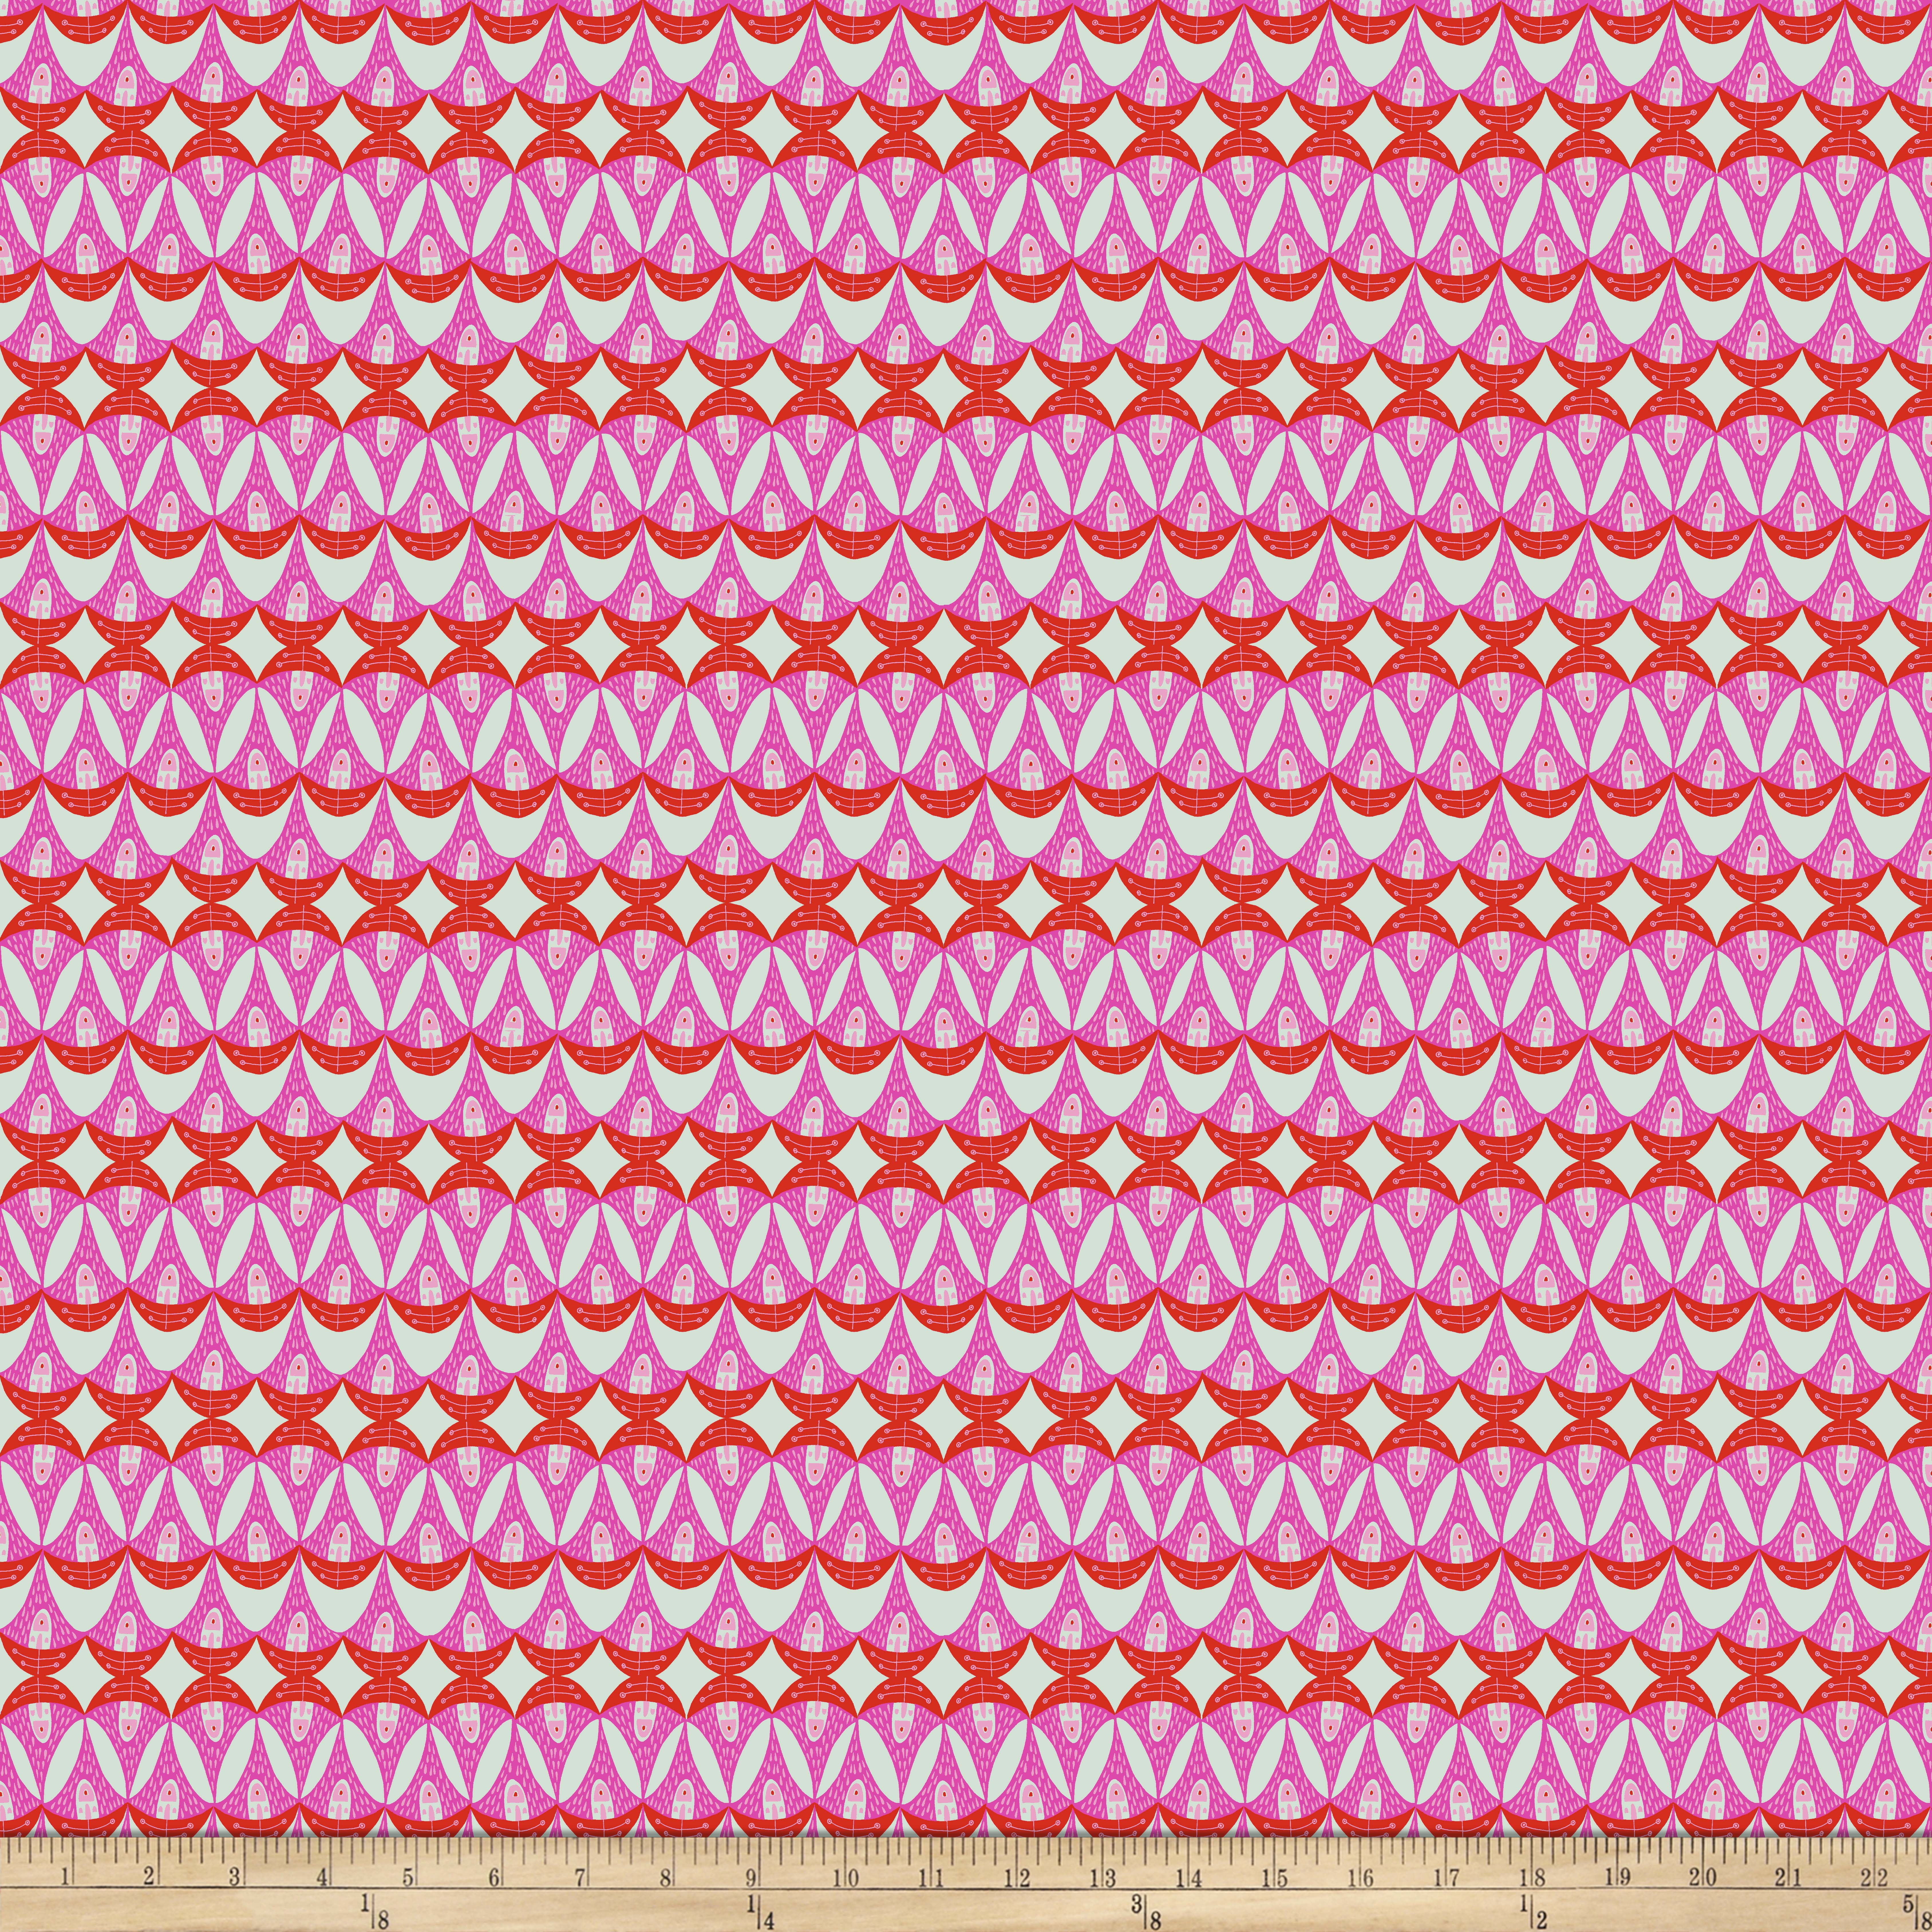 INOpets.com Anything for Pets Parents & Their Pets Garden Dreams Watermelon Pink Fabric